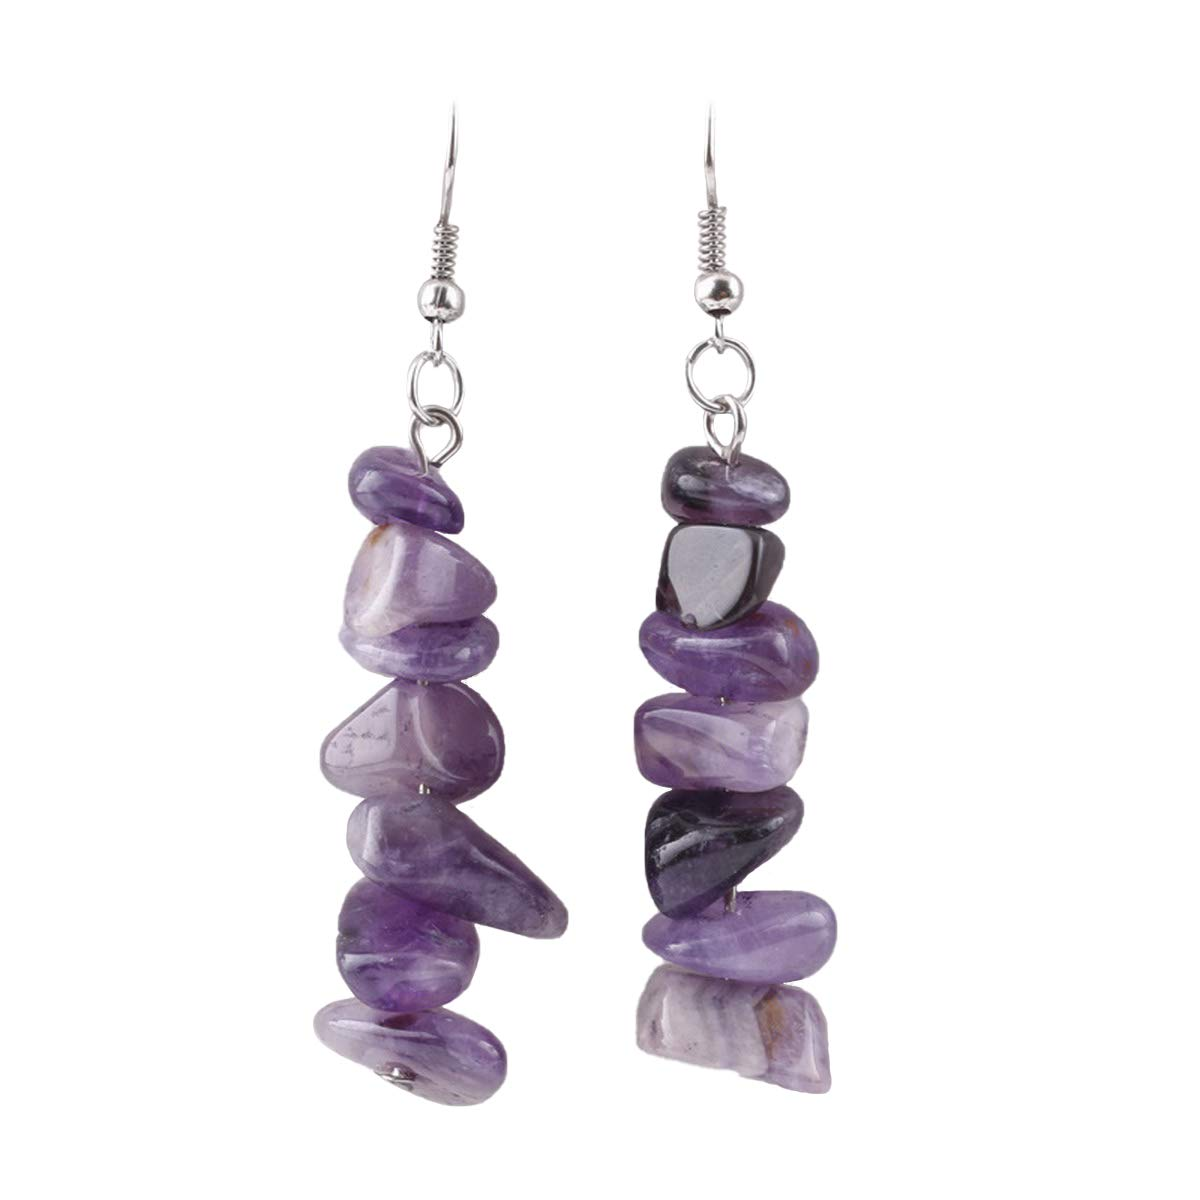 """IDB Delicate Simulated Natural Gemstone Drop Hook Earrings with a Large 2 13/32"""" (2.40"""" / 60mm) Drop- Threaded Gemstone - Multiple Colors Available"""